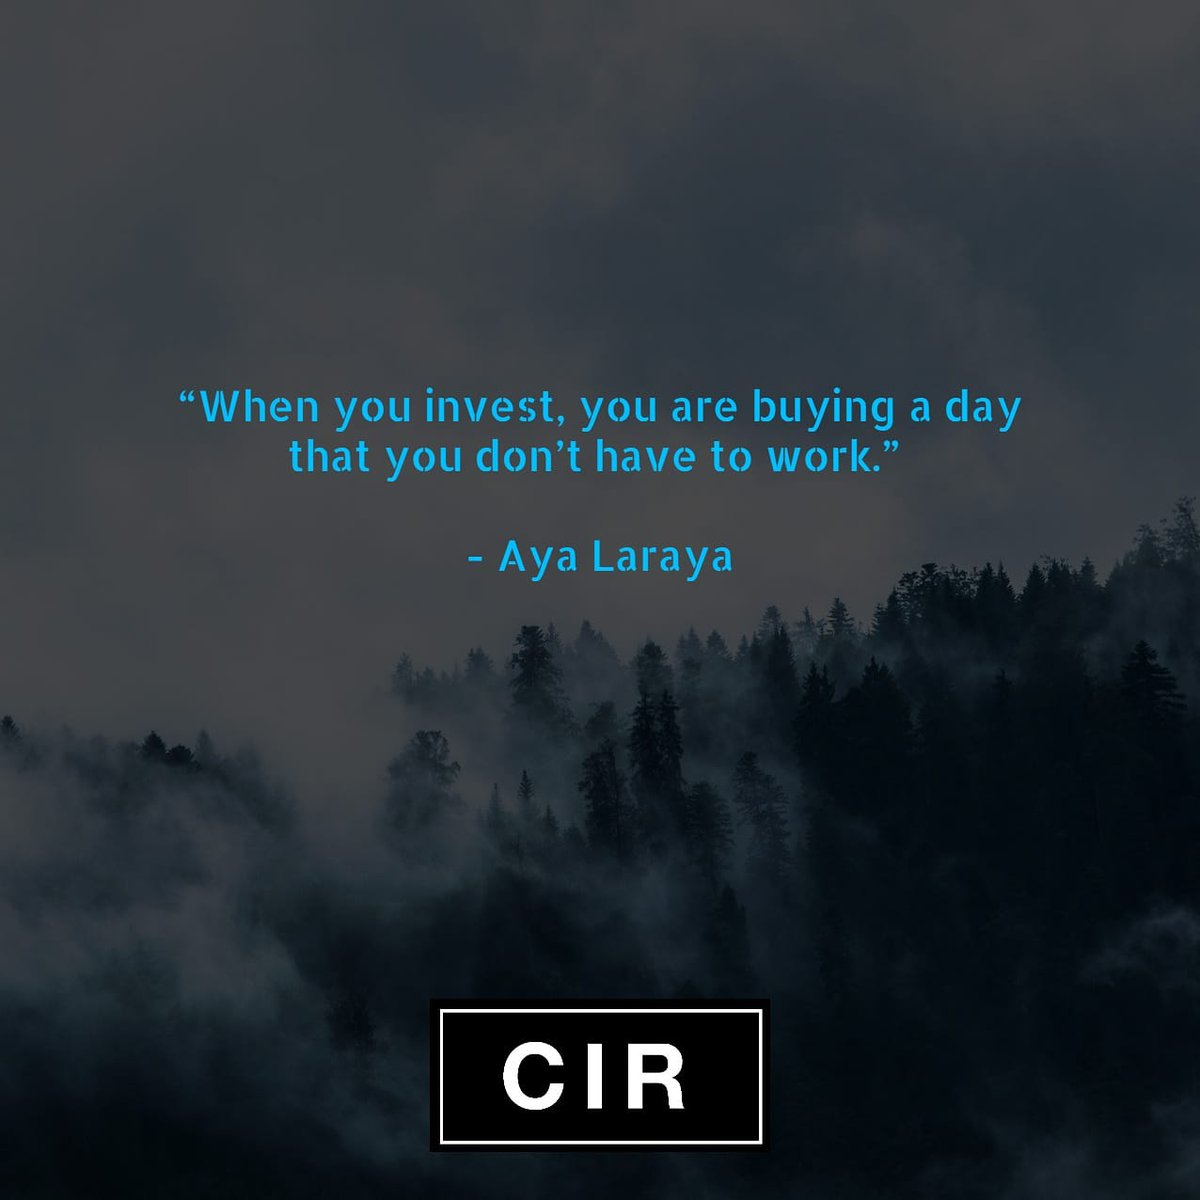 #Invest so you can stop working one day . pic.twitter.com/jrPLp51cXv